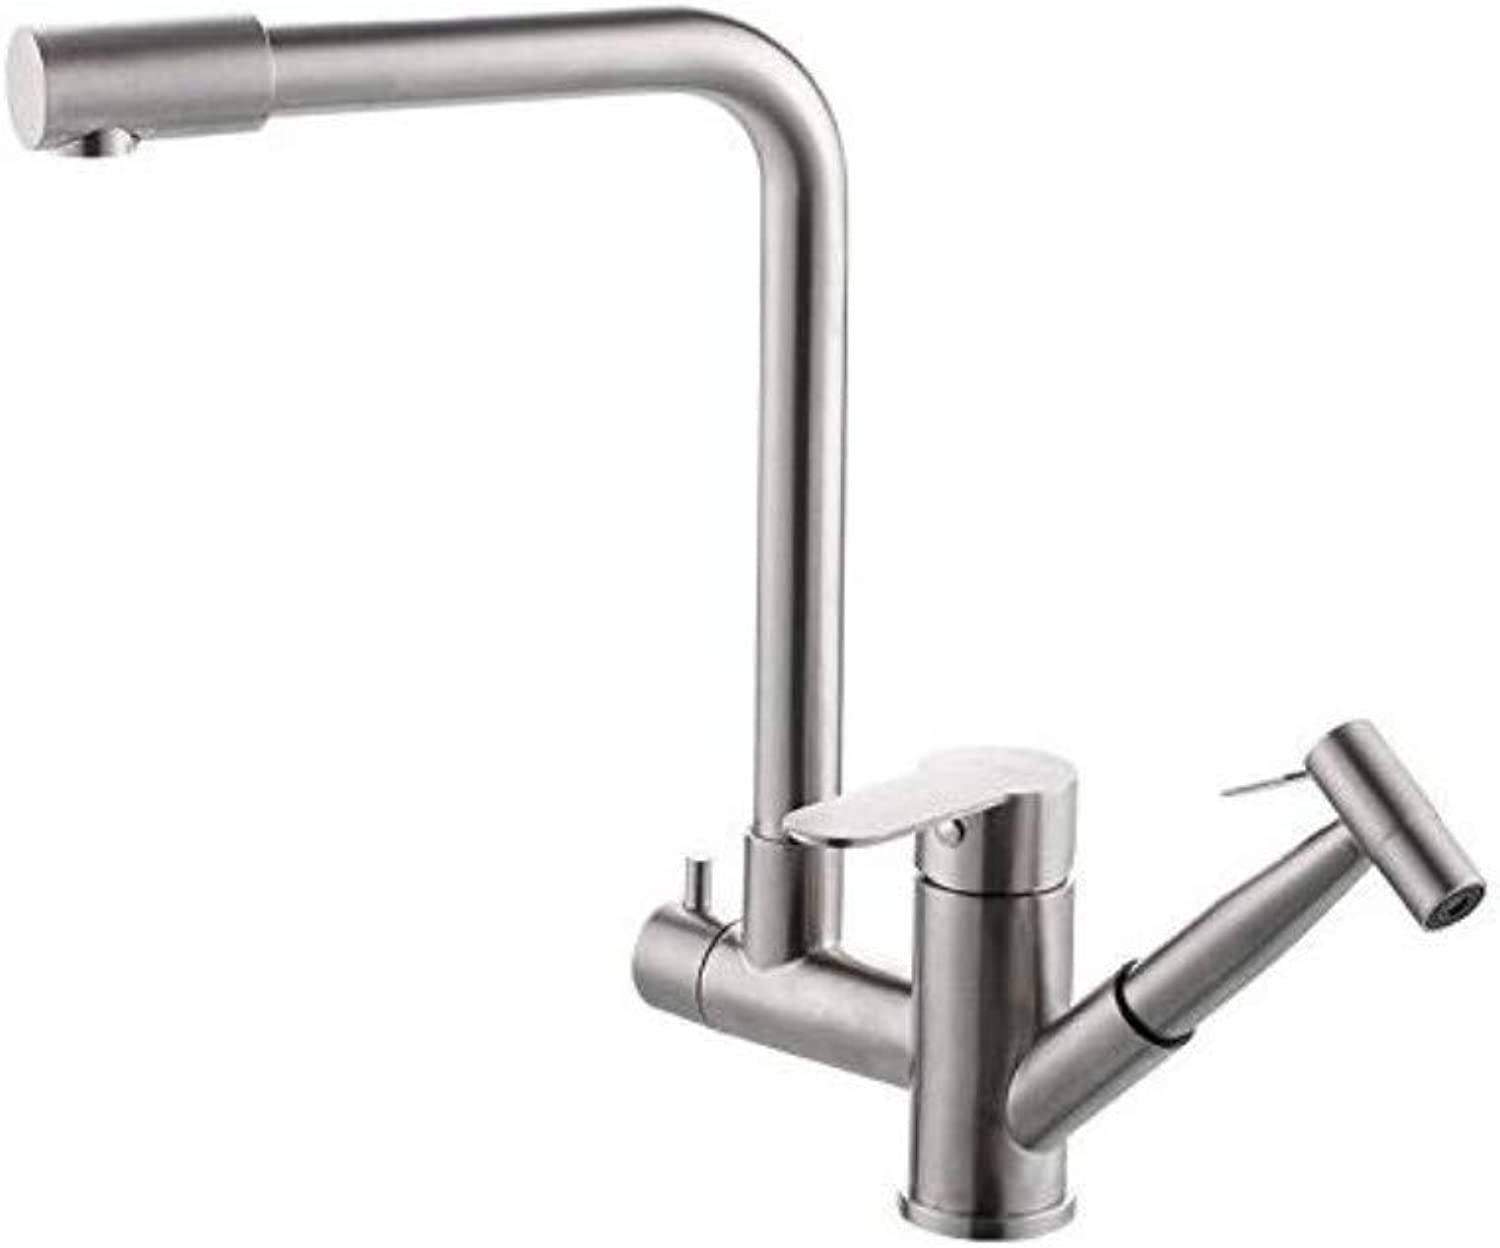 Taps Kitchen Sinkantique Kitchen Sink Mixer Tap 304 Stainless Steel Hot and Cold Water Kitchen Pull-Down Faucet